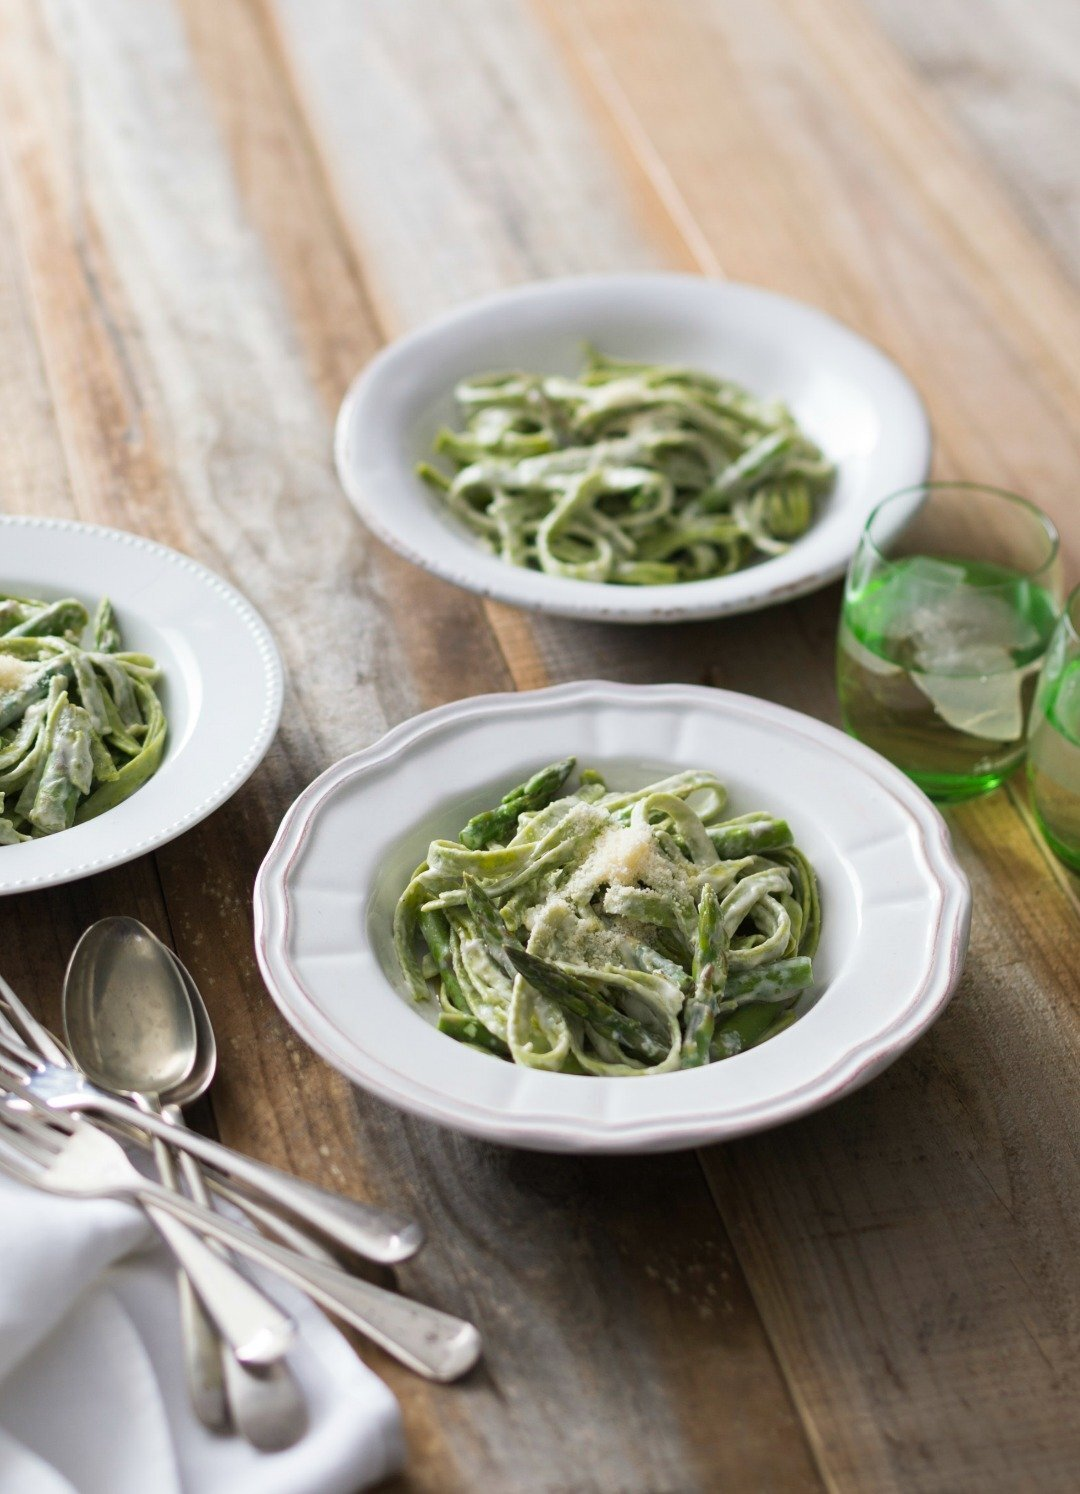 Thermomix Gluten Free Spinach and Lemon Pasta